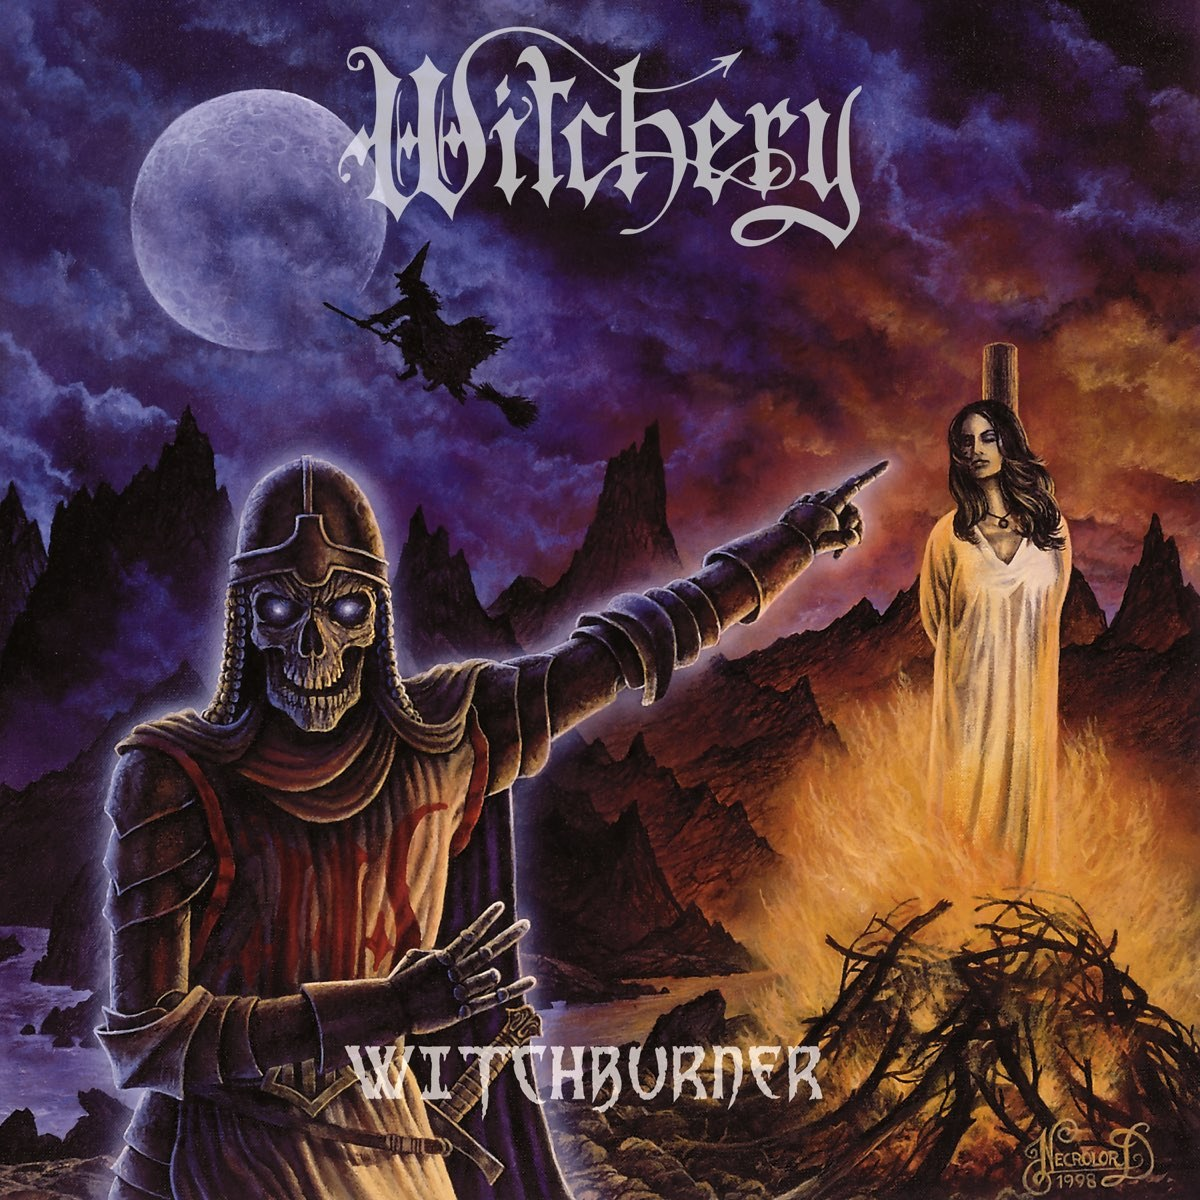 Review for Witchery - Witchburner